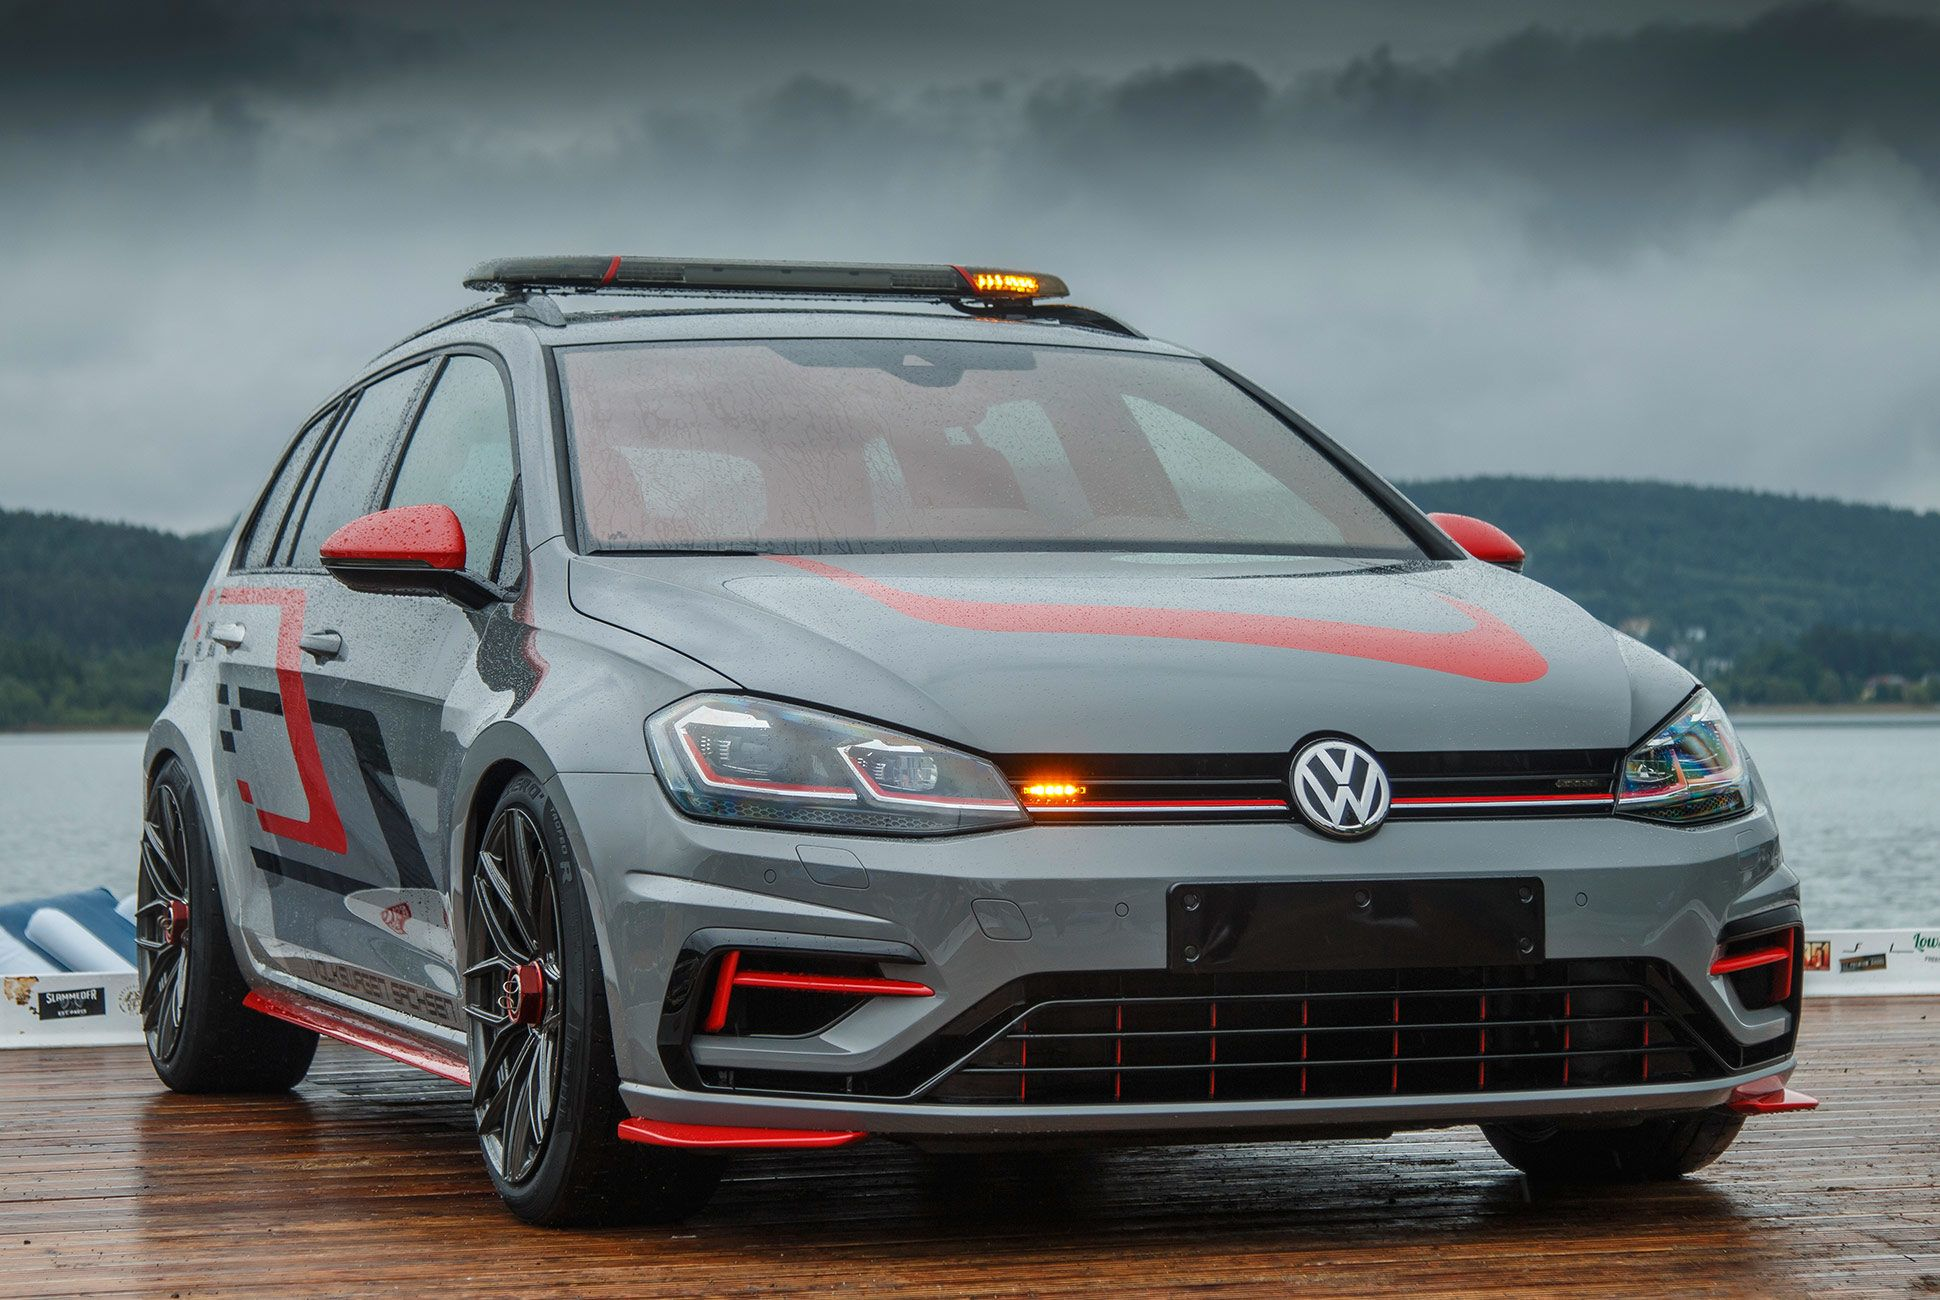 Vw S Insane Golf R Wagon And Gti Concepts Hide Serious Power Volkswagen Volkswagen Golf Best Station Wagons